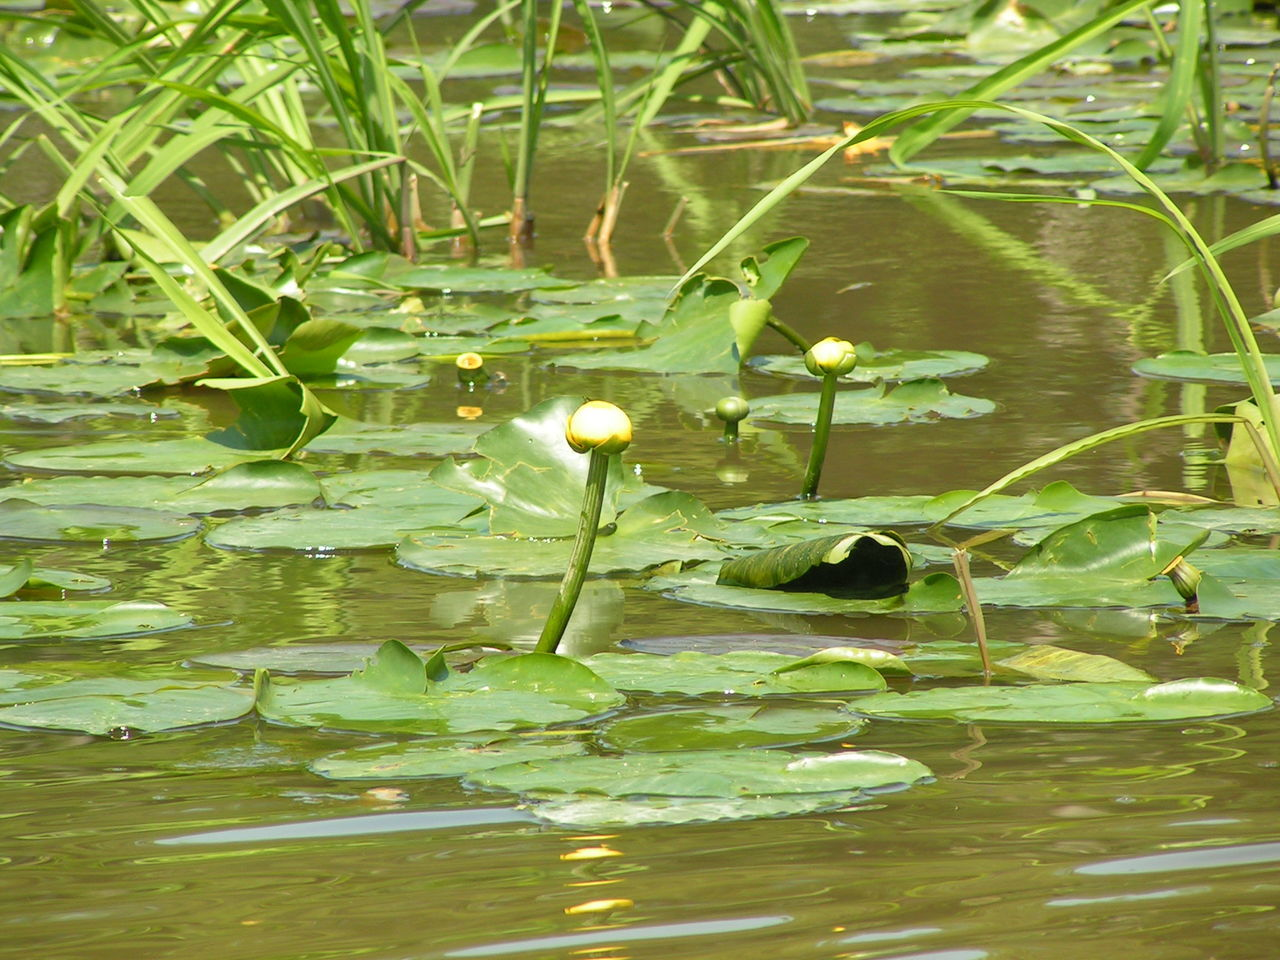 Beauty In Nature Close-up Day Floating On Water Freshness Lake Leaf Lily Pad Nature No People Outdoors Reflection Tranquil Scene Tranquility Water Louisiana Bayou Louisiana Swamp